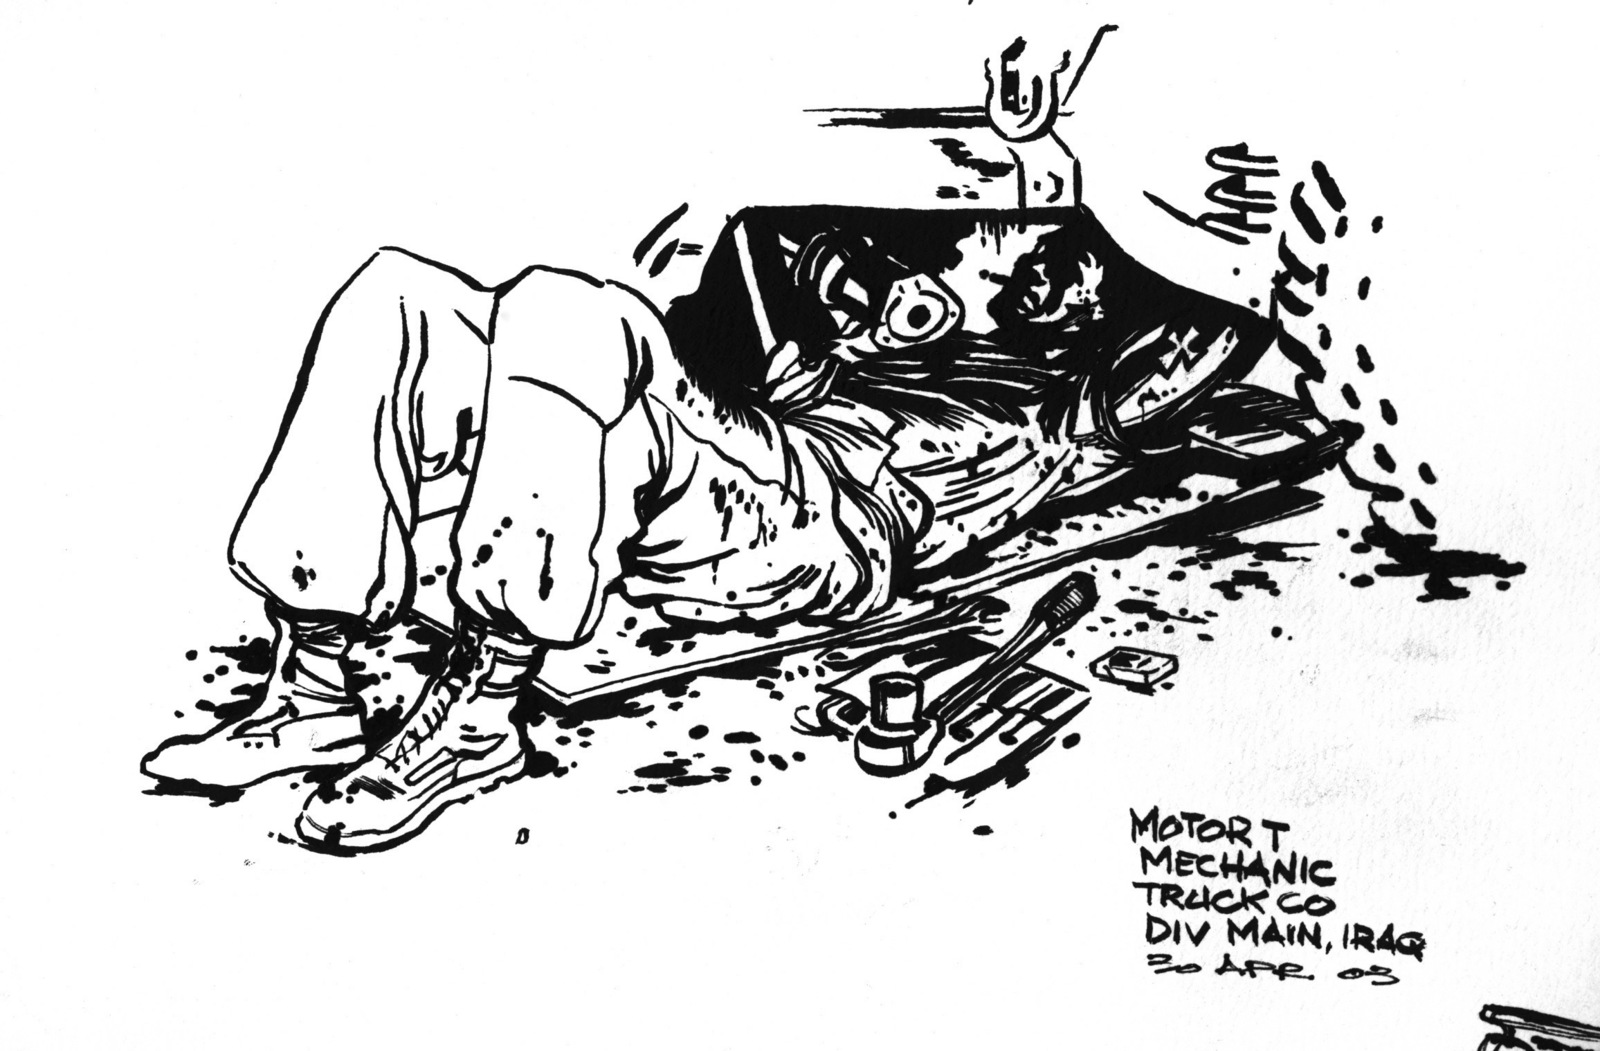 Ink Sketch Of A Us Marine Corps Usmc Motor Mechanic